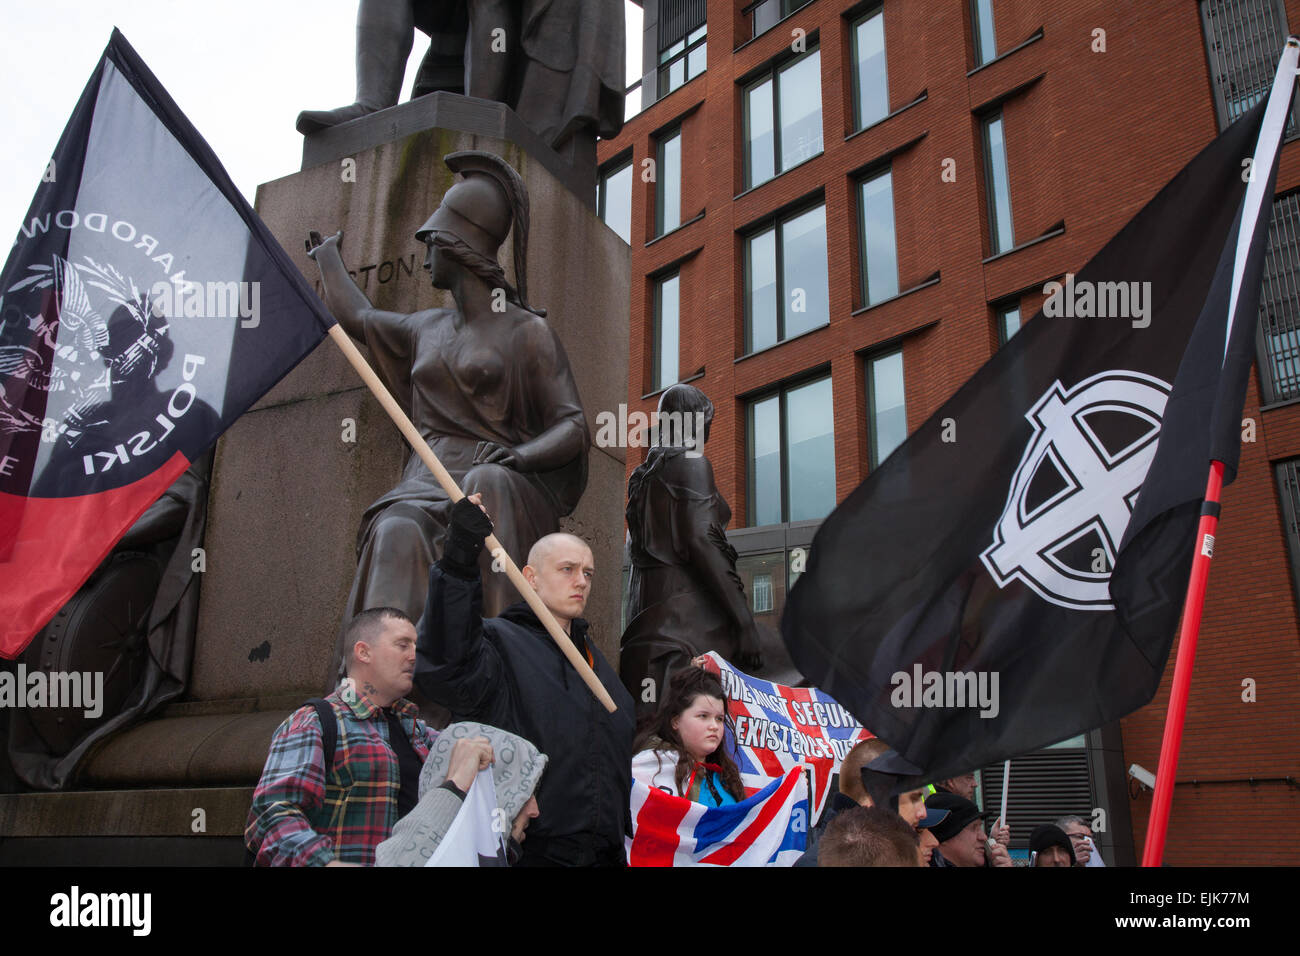 Manchester, UK 28th March, 2015. Far right demonstrators with flags & banners at the National Front and White - Stock Image